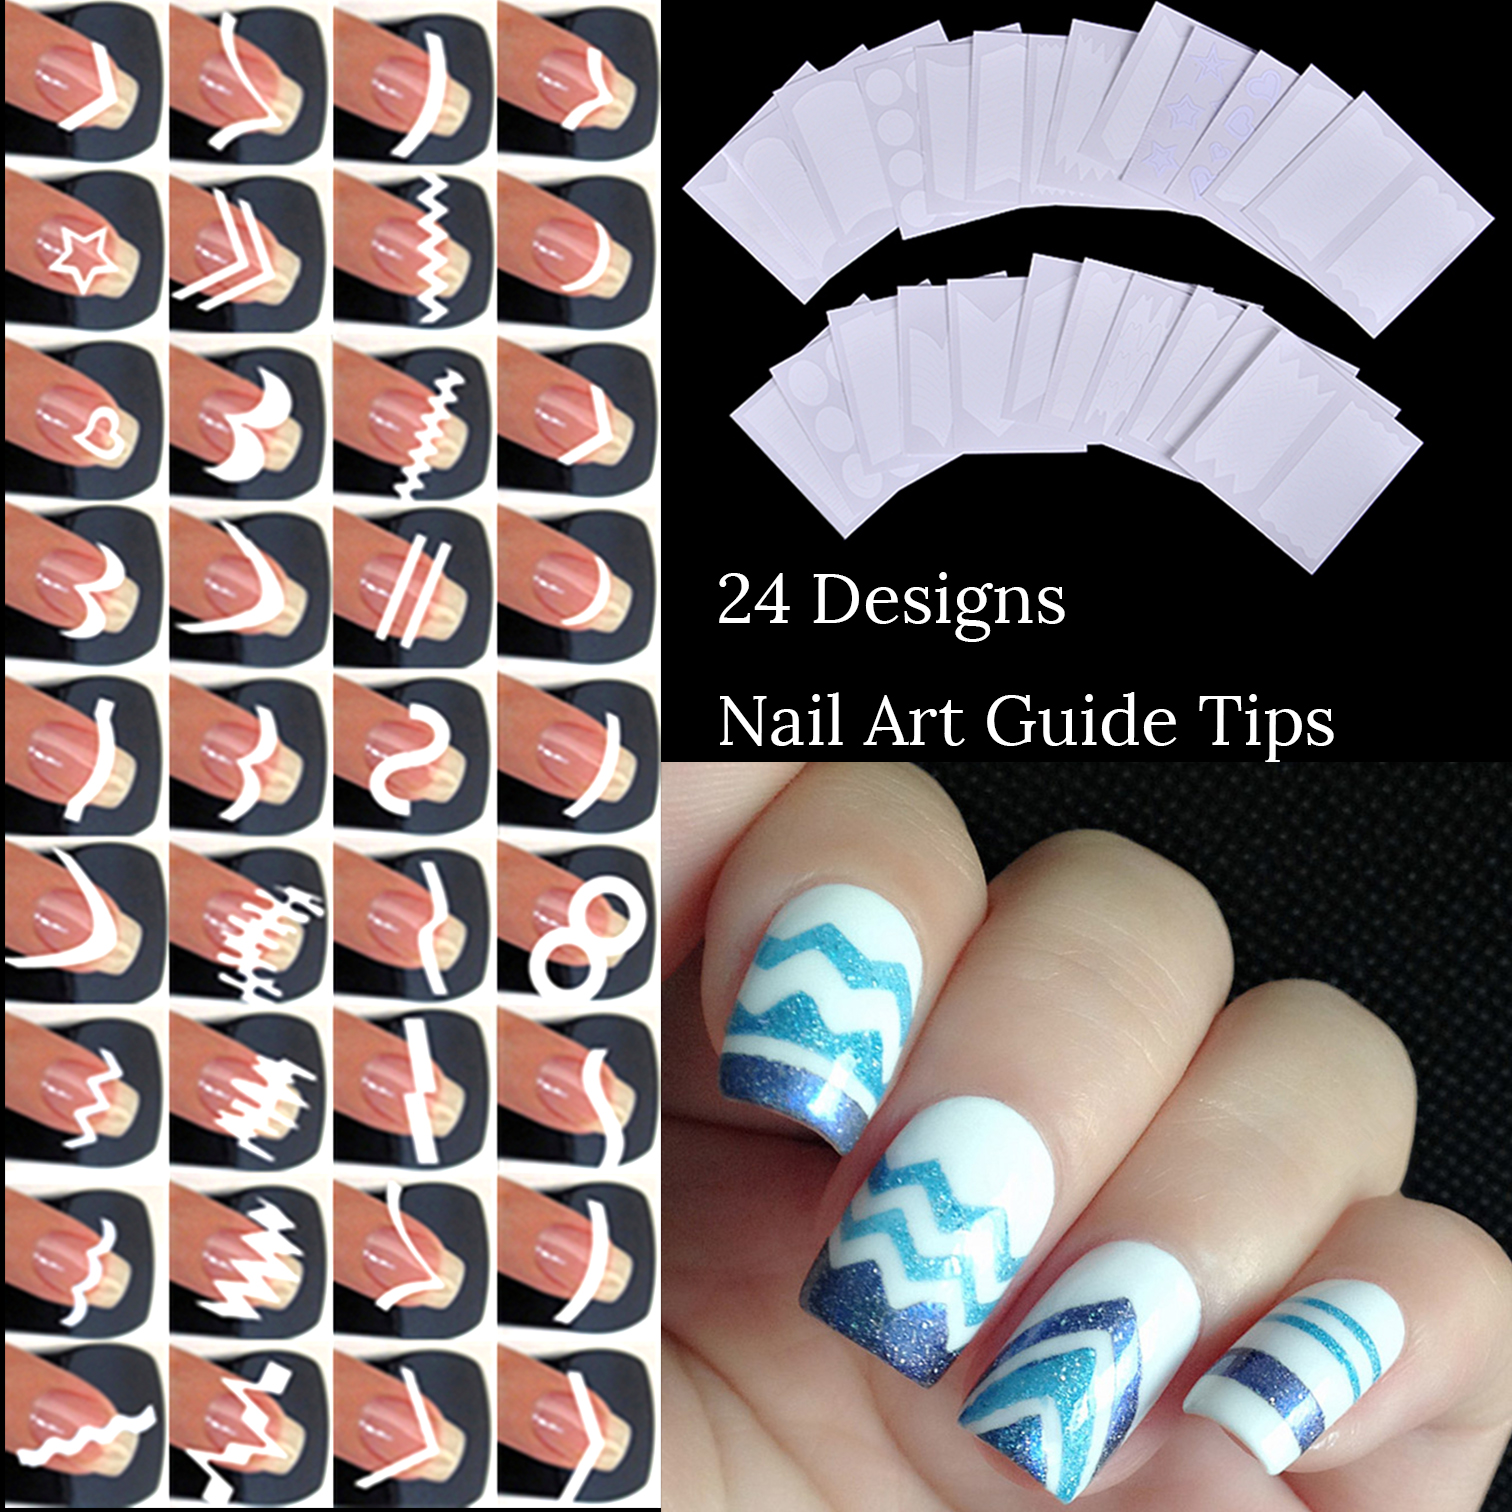 24 Designs Nail Art Guide Tips From Fringe Guides DIY Sticker 3D Manicure Polish Hollow Stencils French Nails 24 styles french manicure diy 3d nail art tips guides stickers stencil strip nail hollow stickers nail art